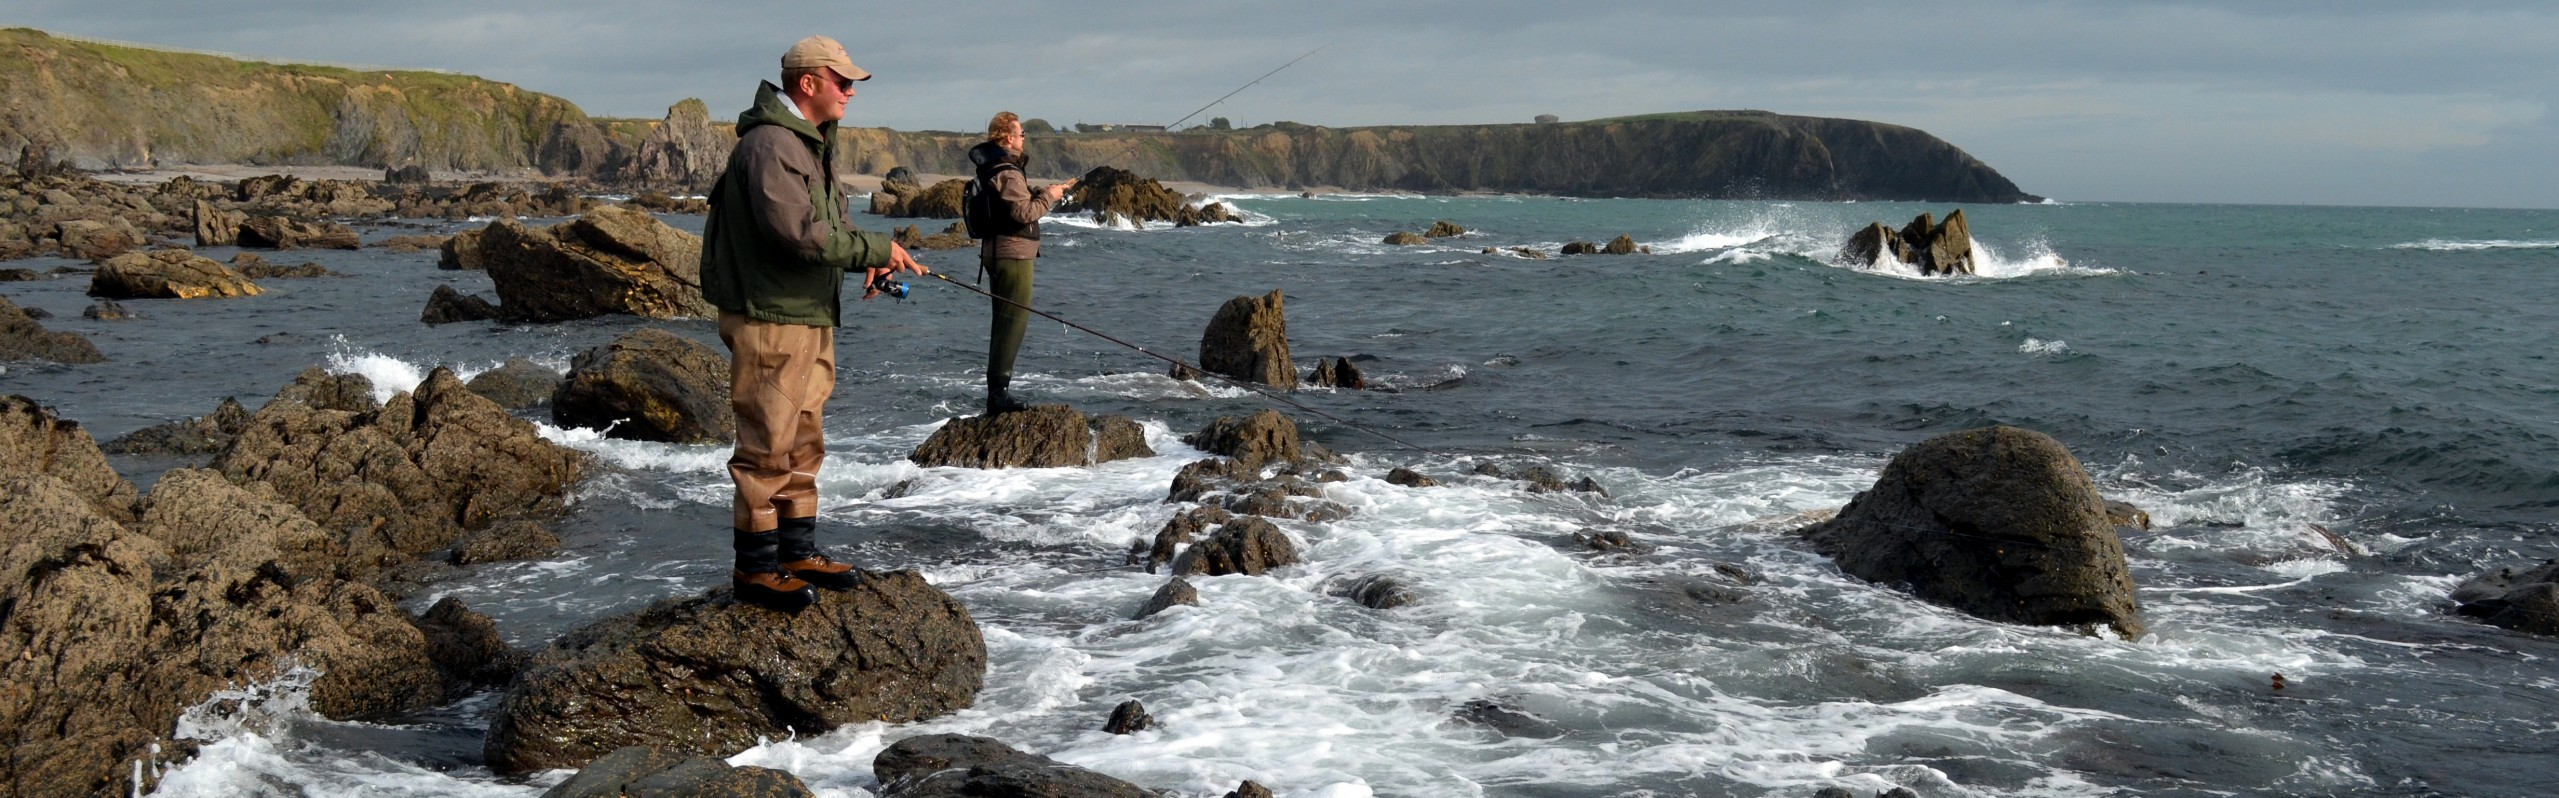 Bass fishing in ireland